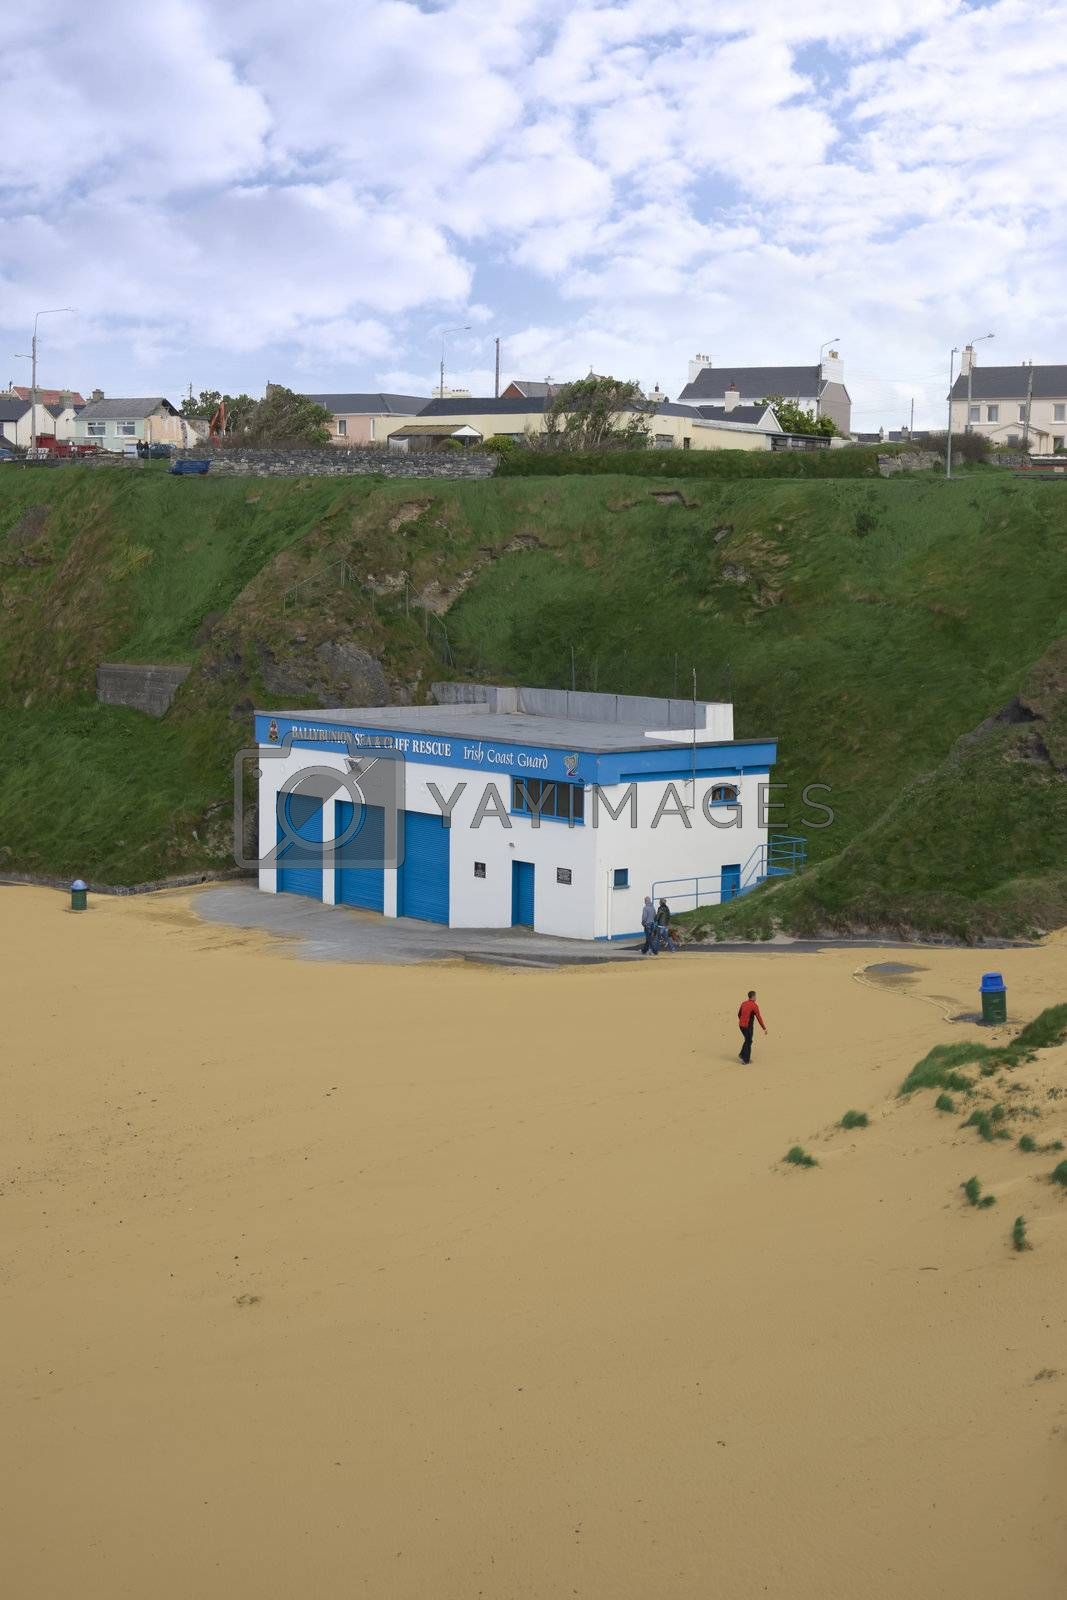 Ballybunion sea and cliff rescue centre on Ballybunion beach in county Kerry Ireland